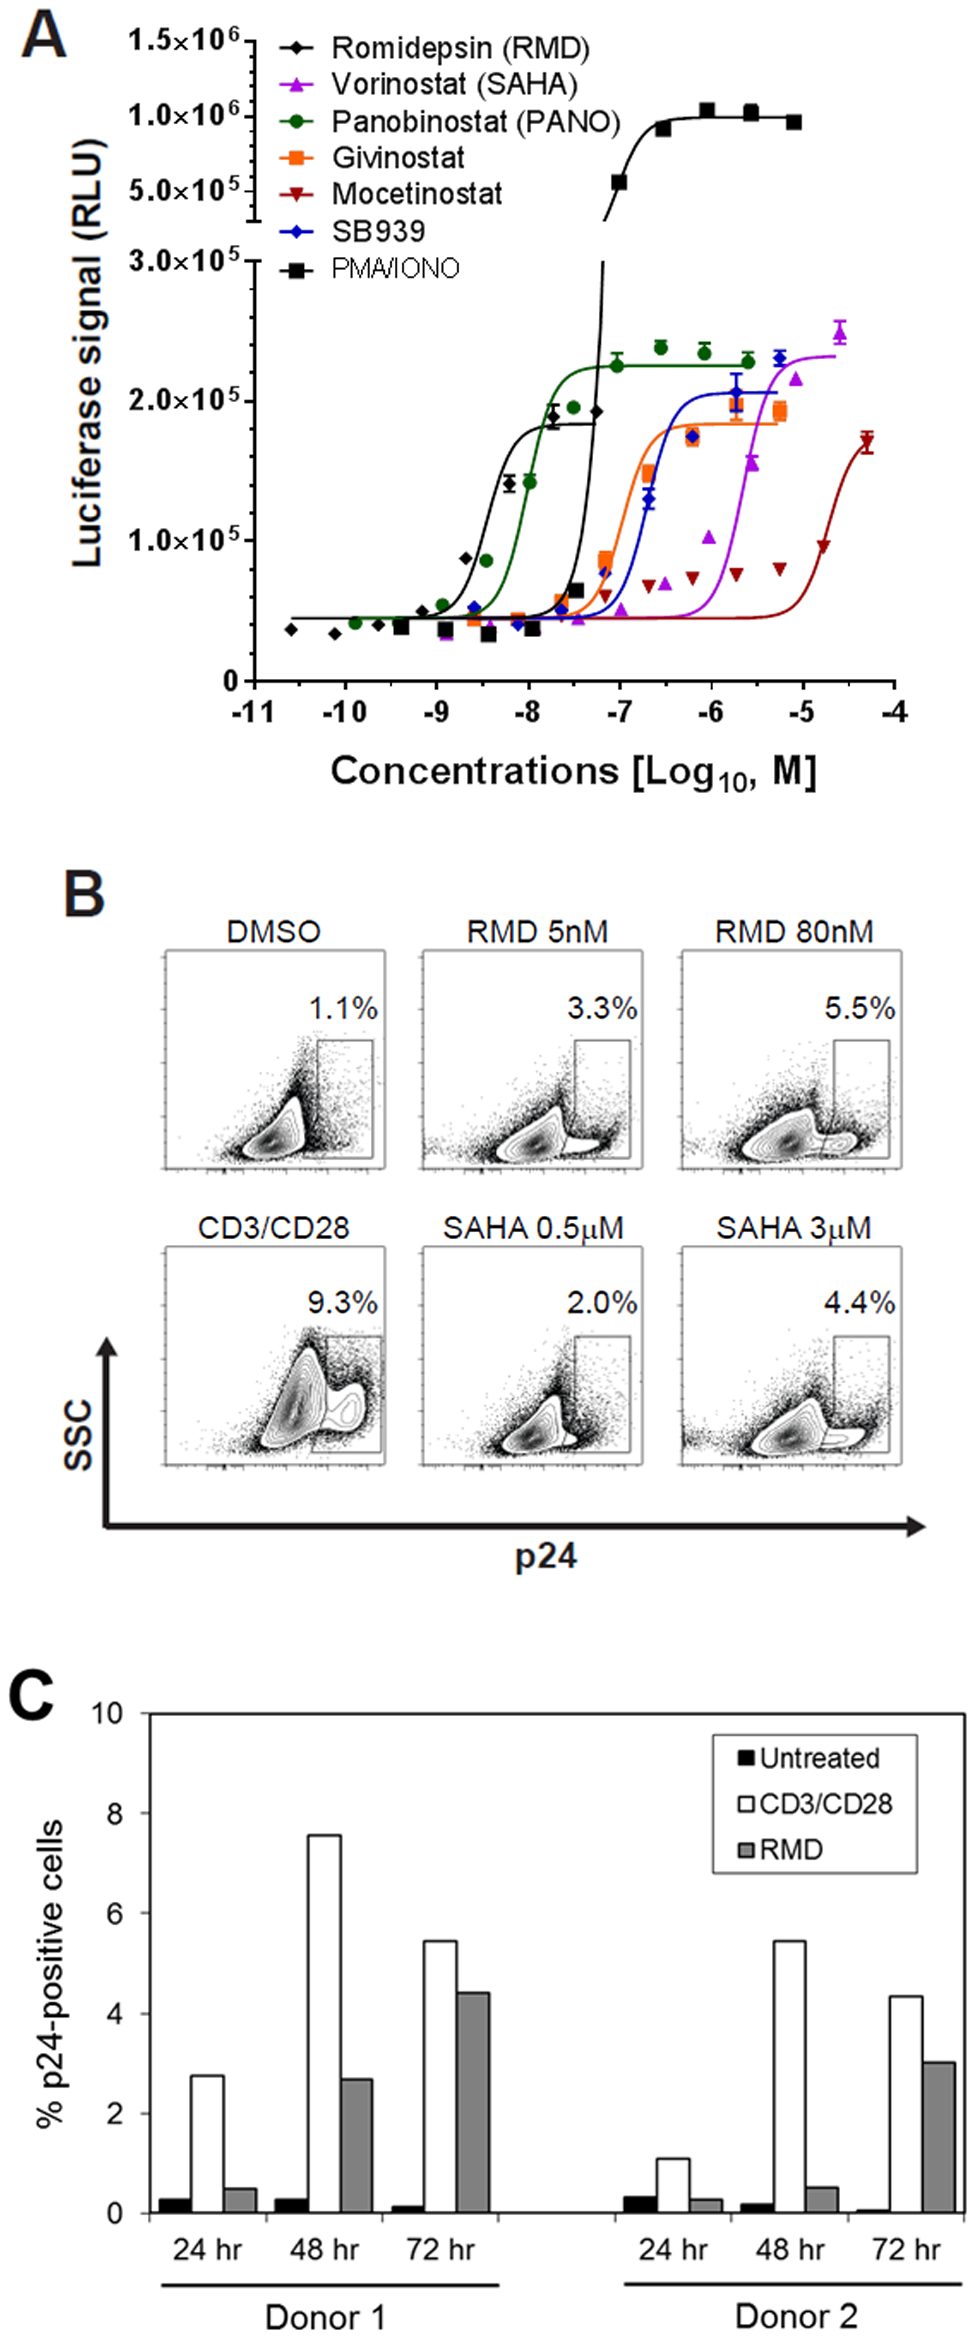 In vitro activation of HIV expression by HDAC inhibitors in an in vitro latency model.